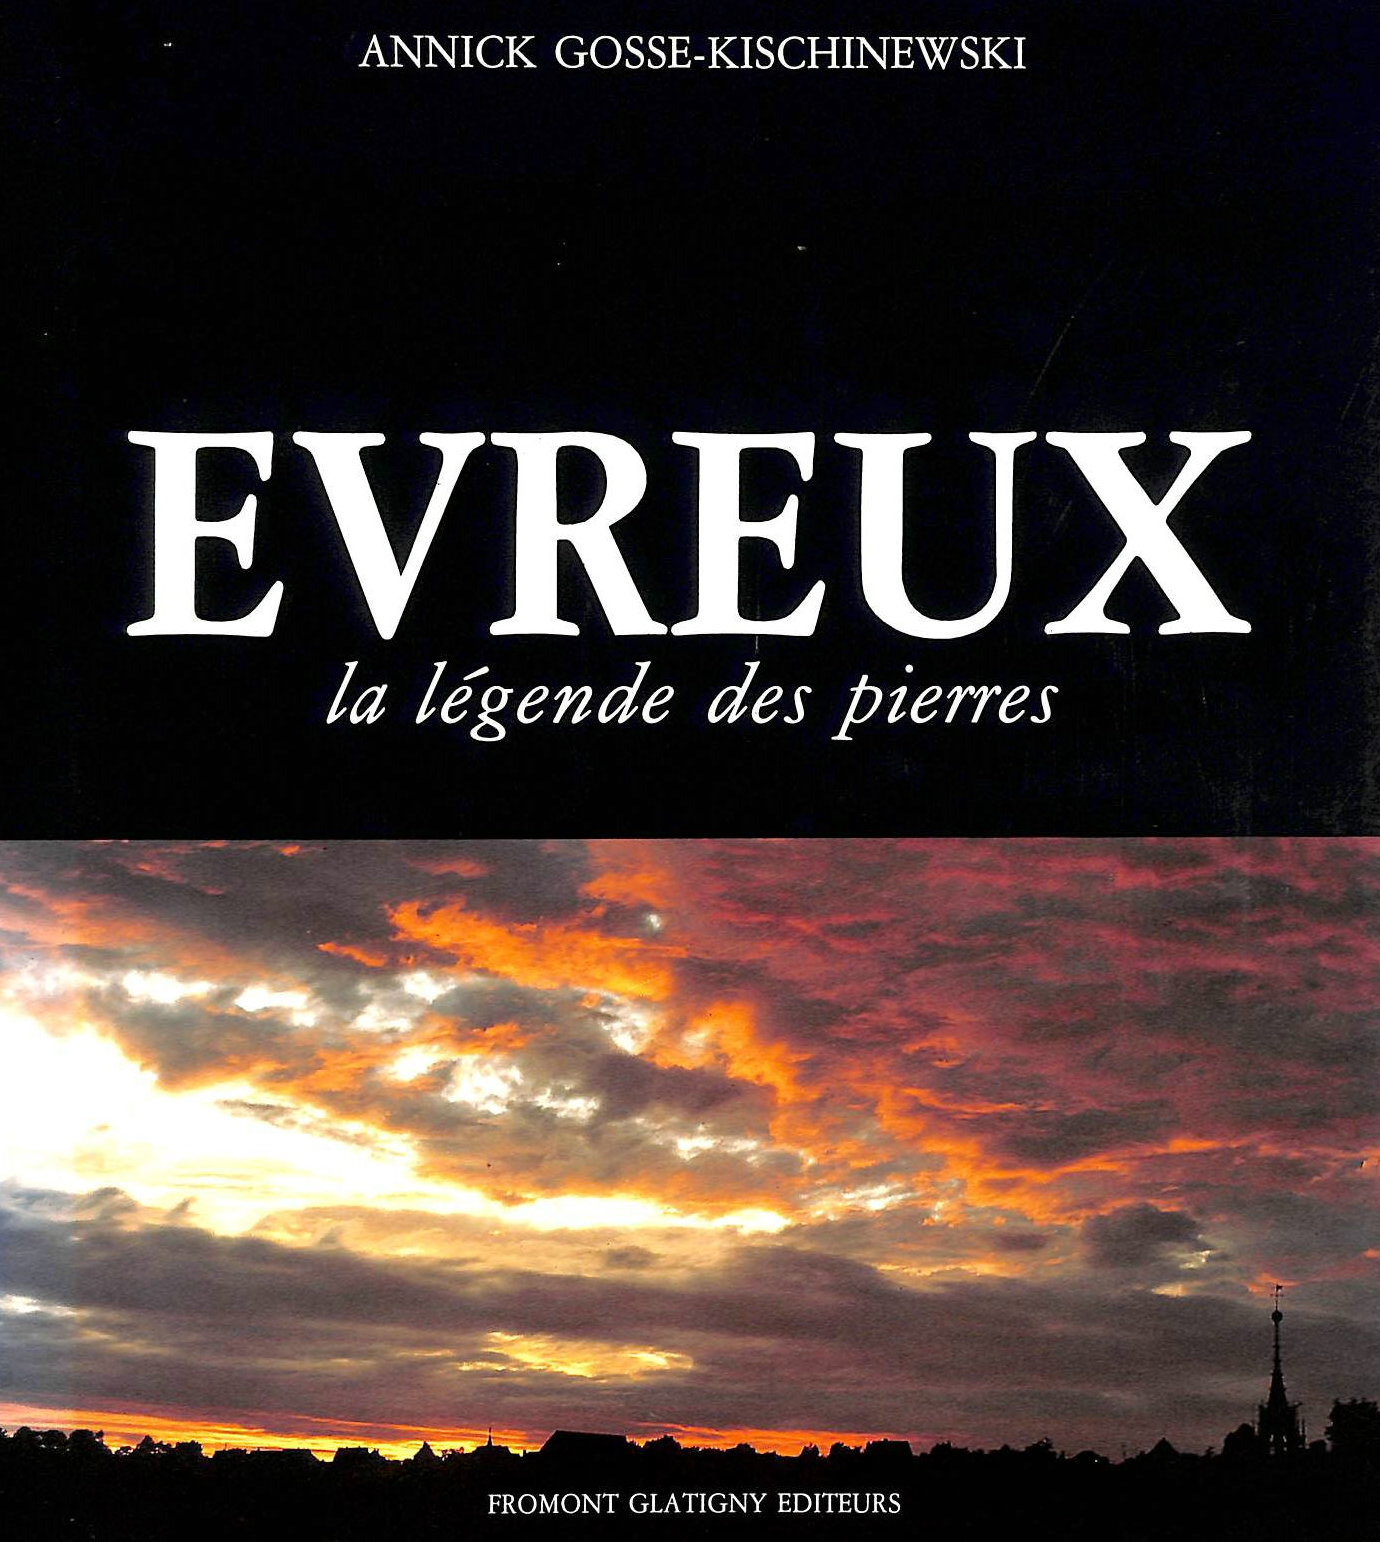 Image for Evreux: La legende des pierres